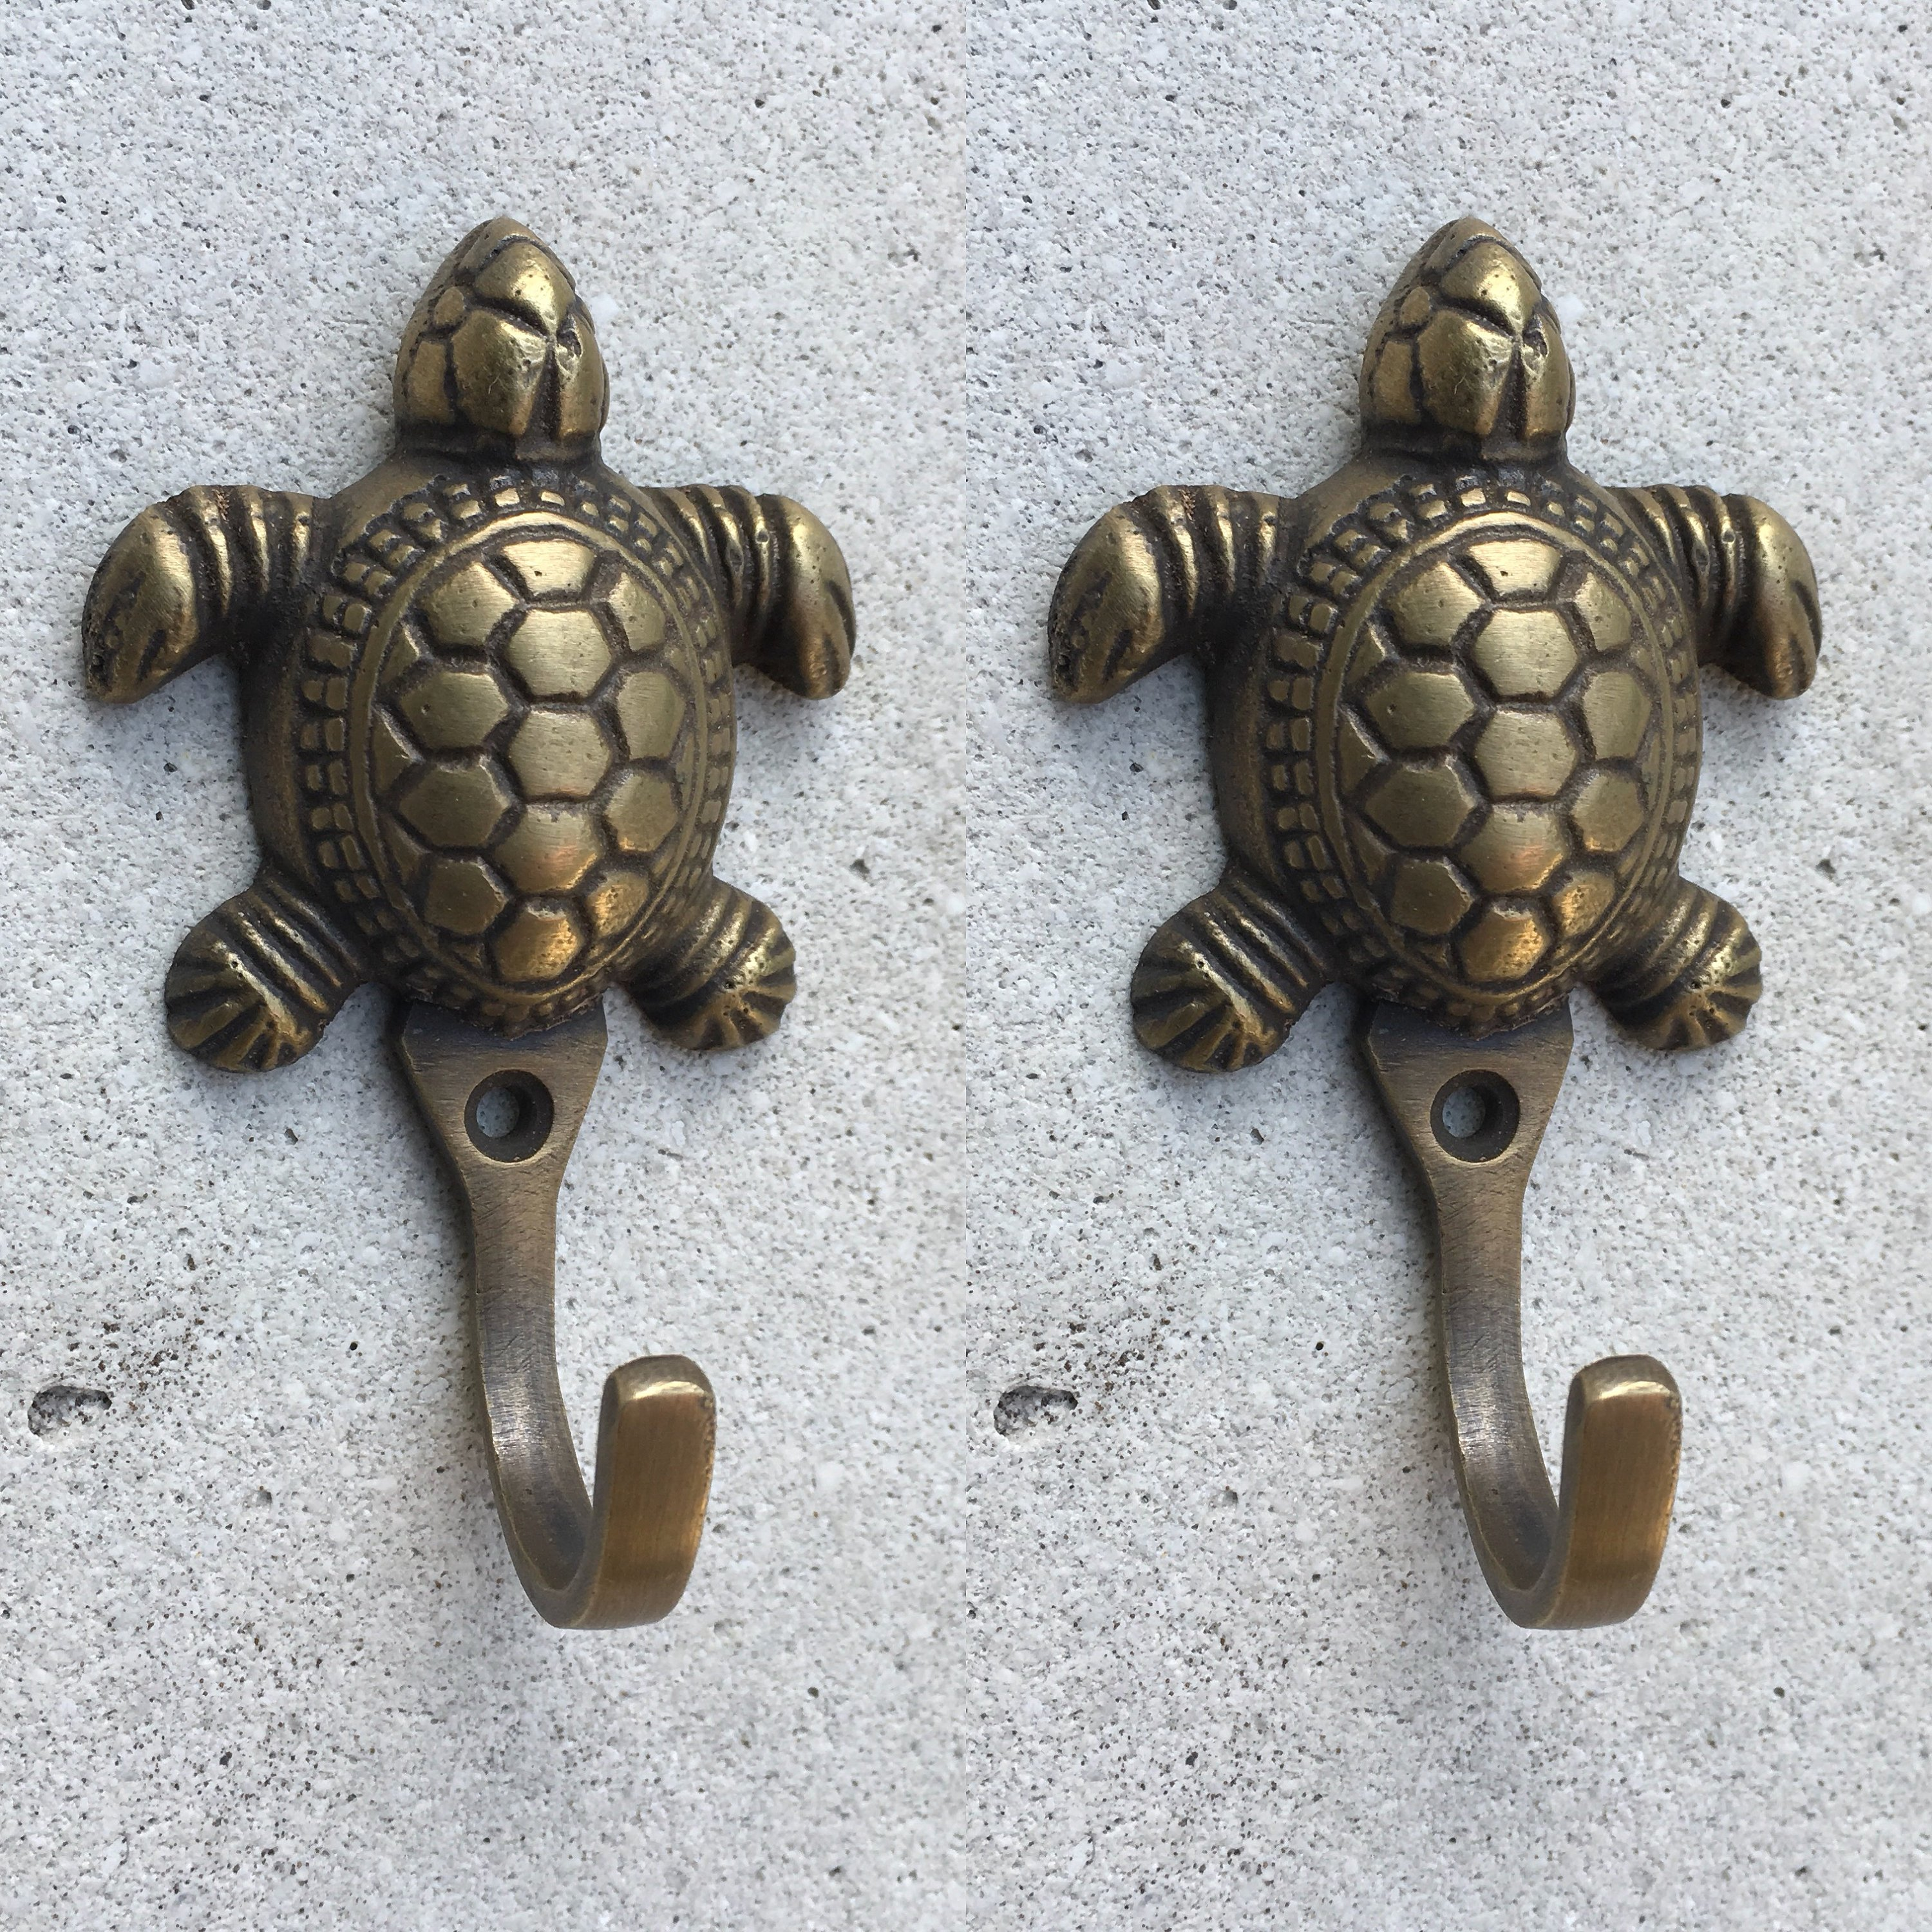 2 Small Turtle Coat Hooks Solid Age Brass Old Vintage Old Style Hook